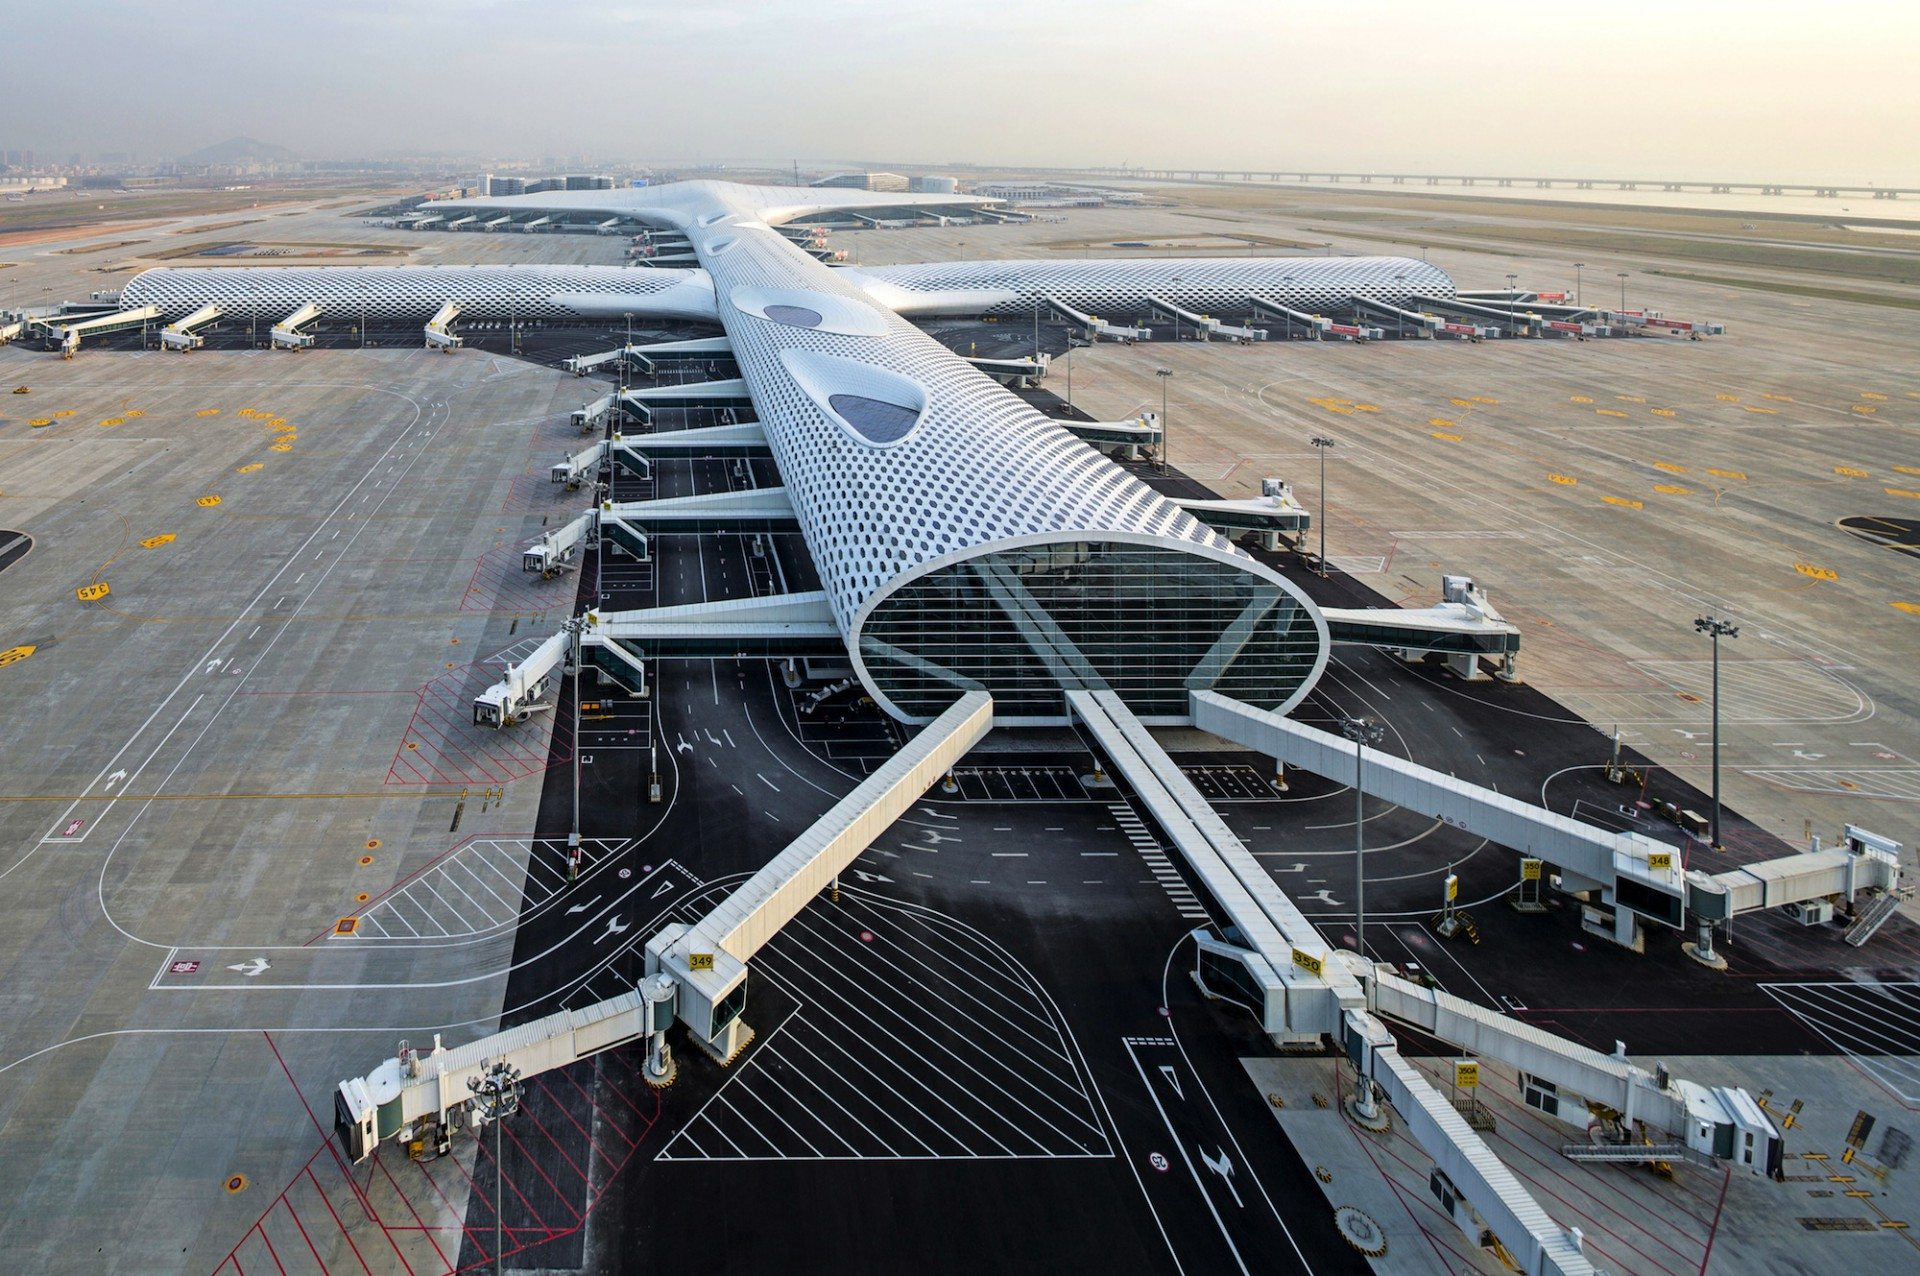 SZX.  Shenzhen Bao'an International Airport, China. Von Massimiliano und Doriana Fuksas.